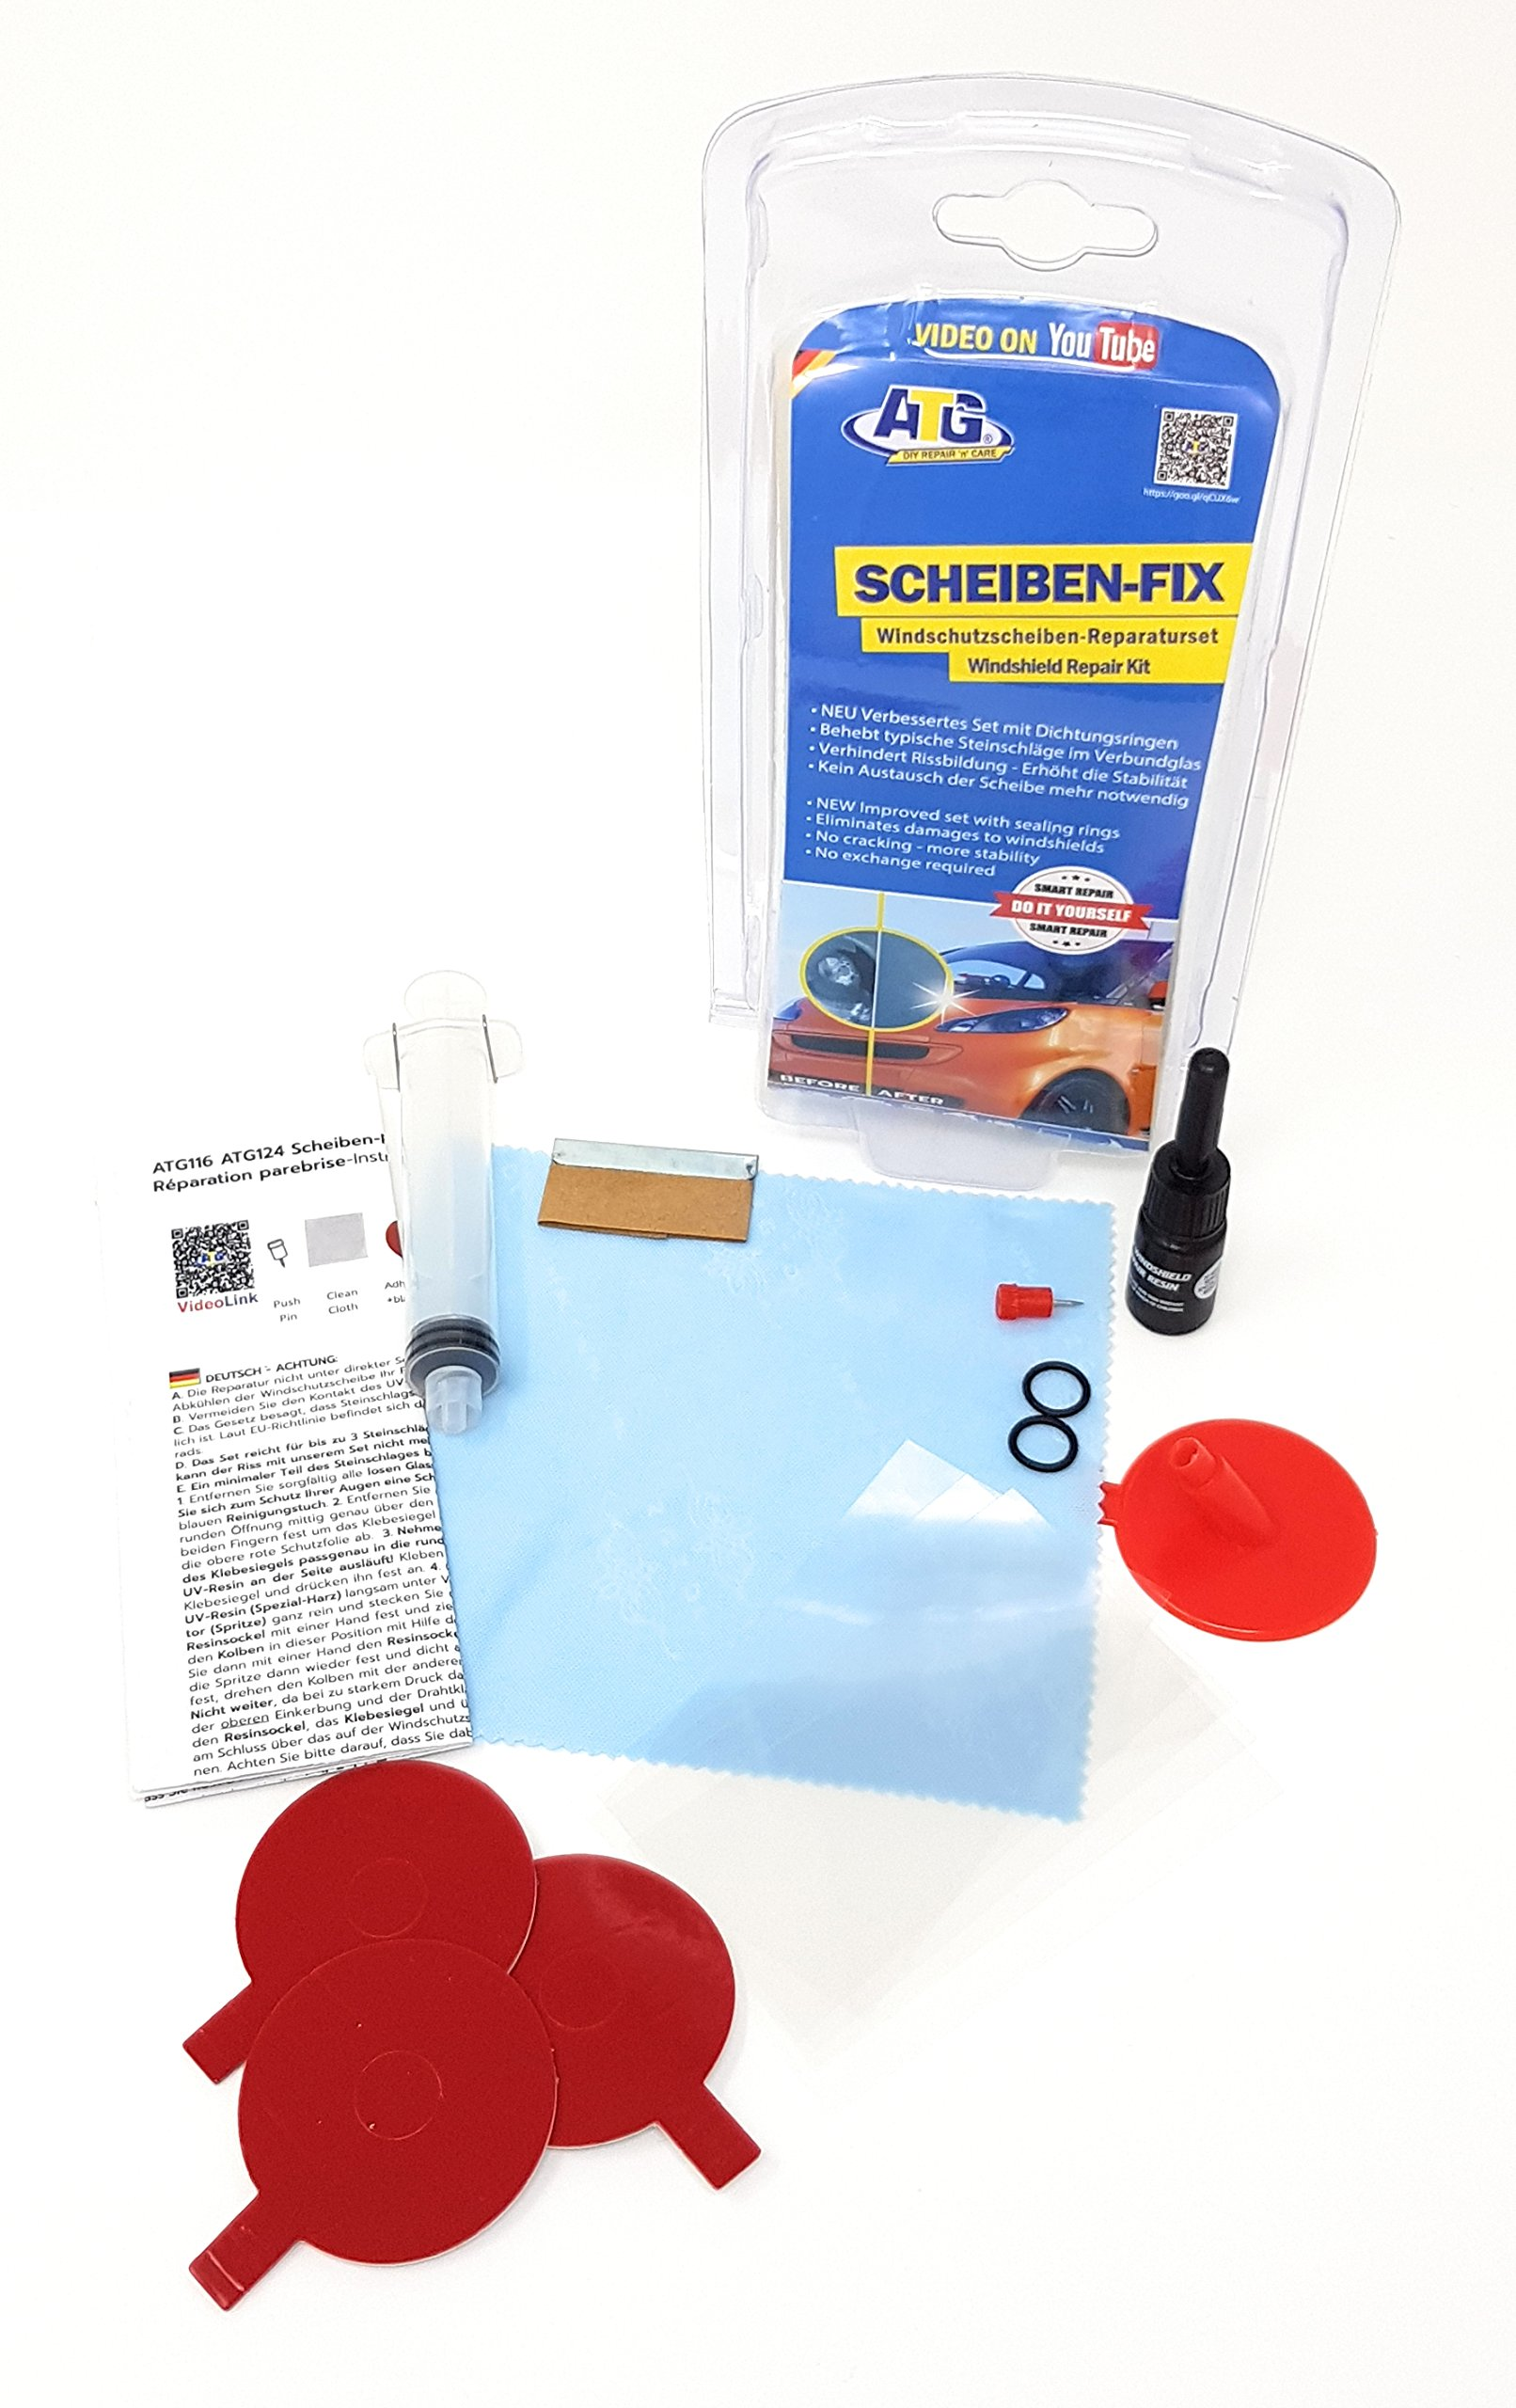 ATG Windshield-FIX | Full Repair Kit for Cracks, Scratches, Chips | 17 pieces. | DIY Smart Repair